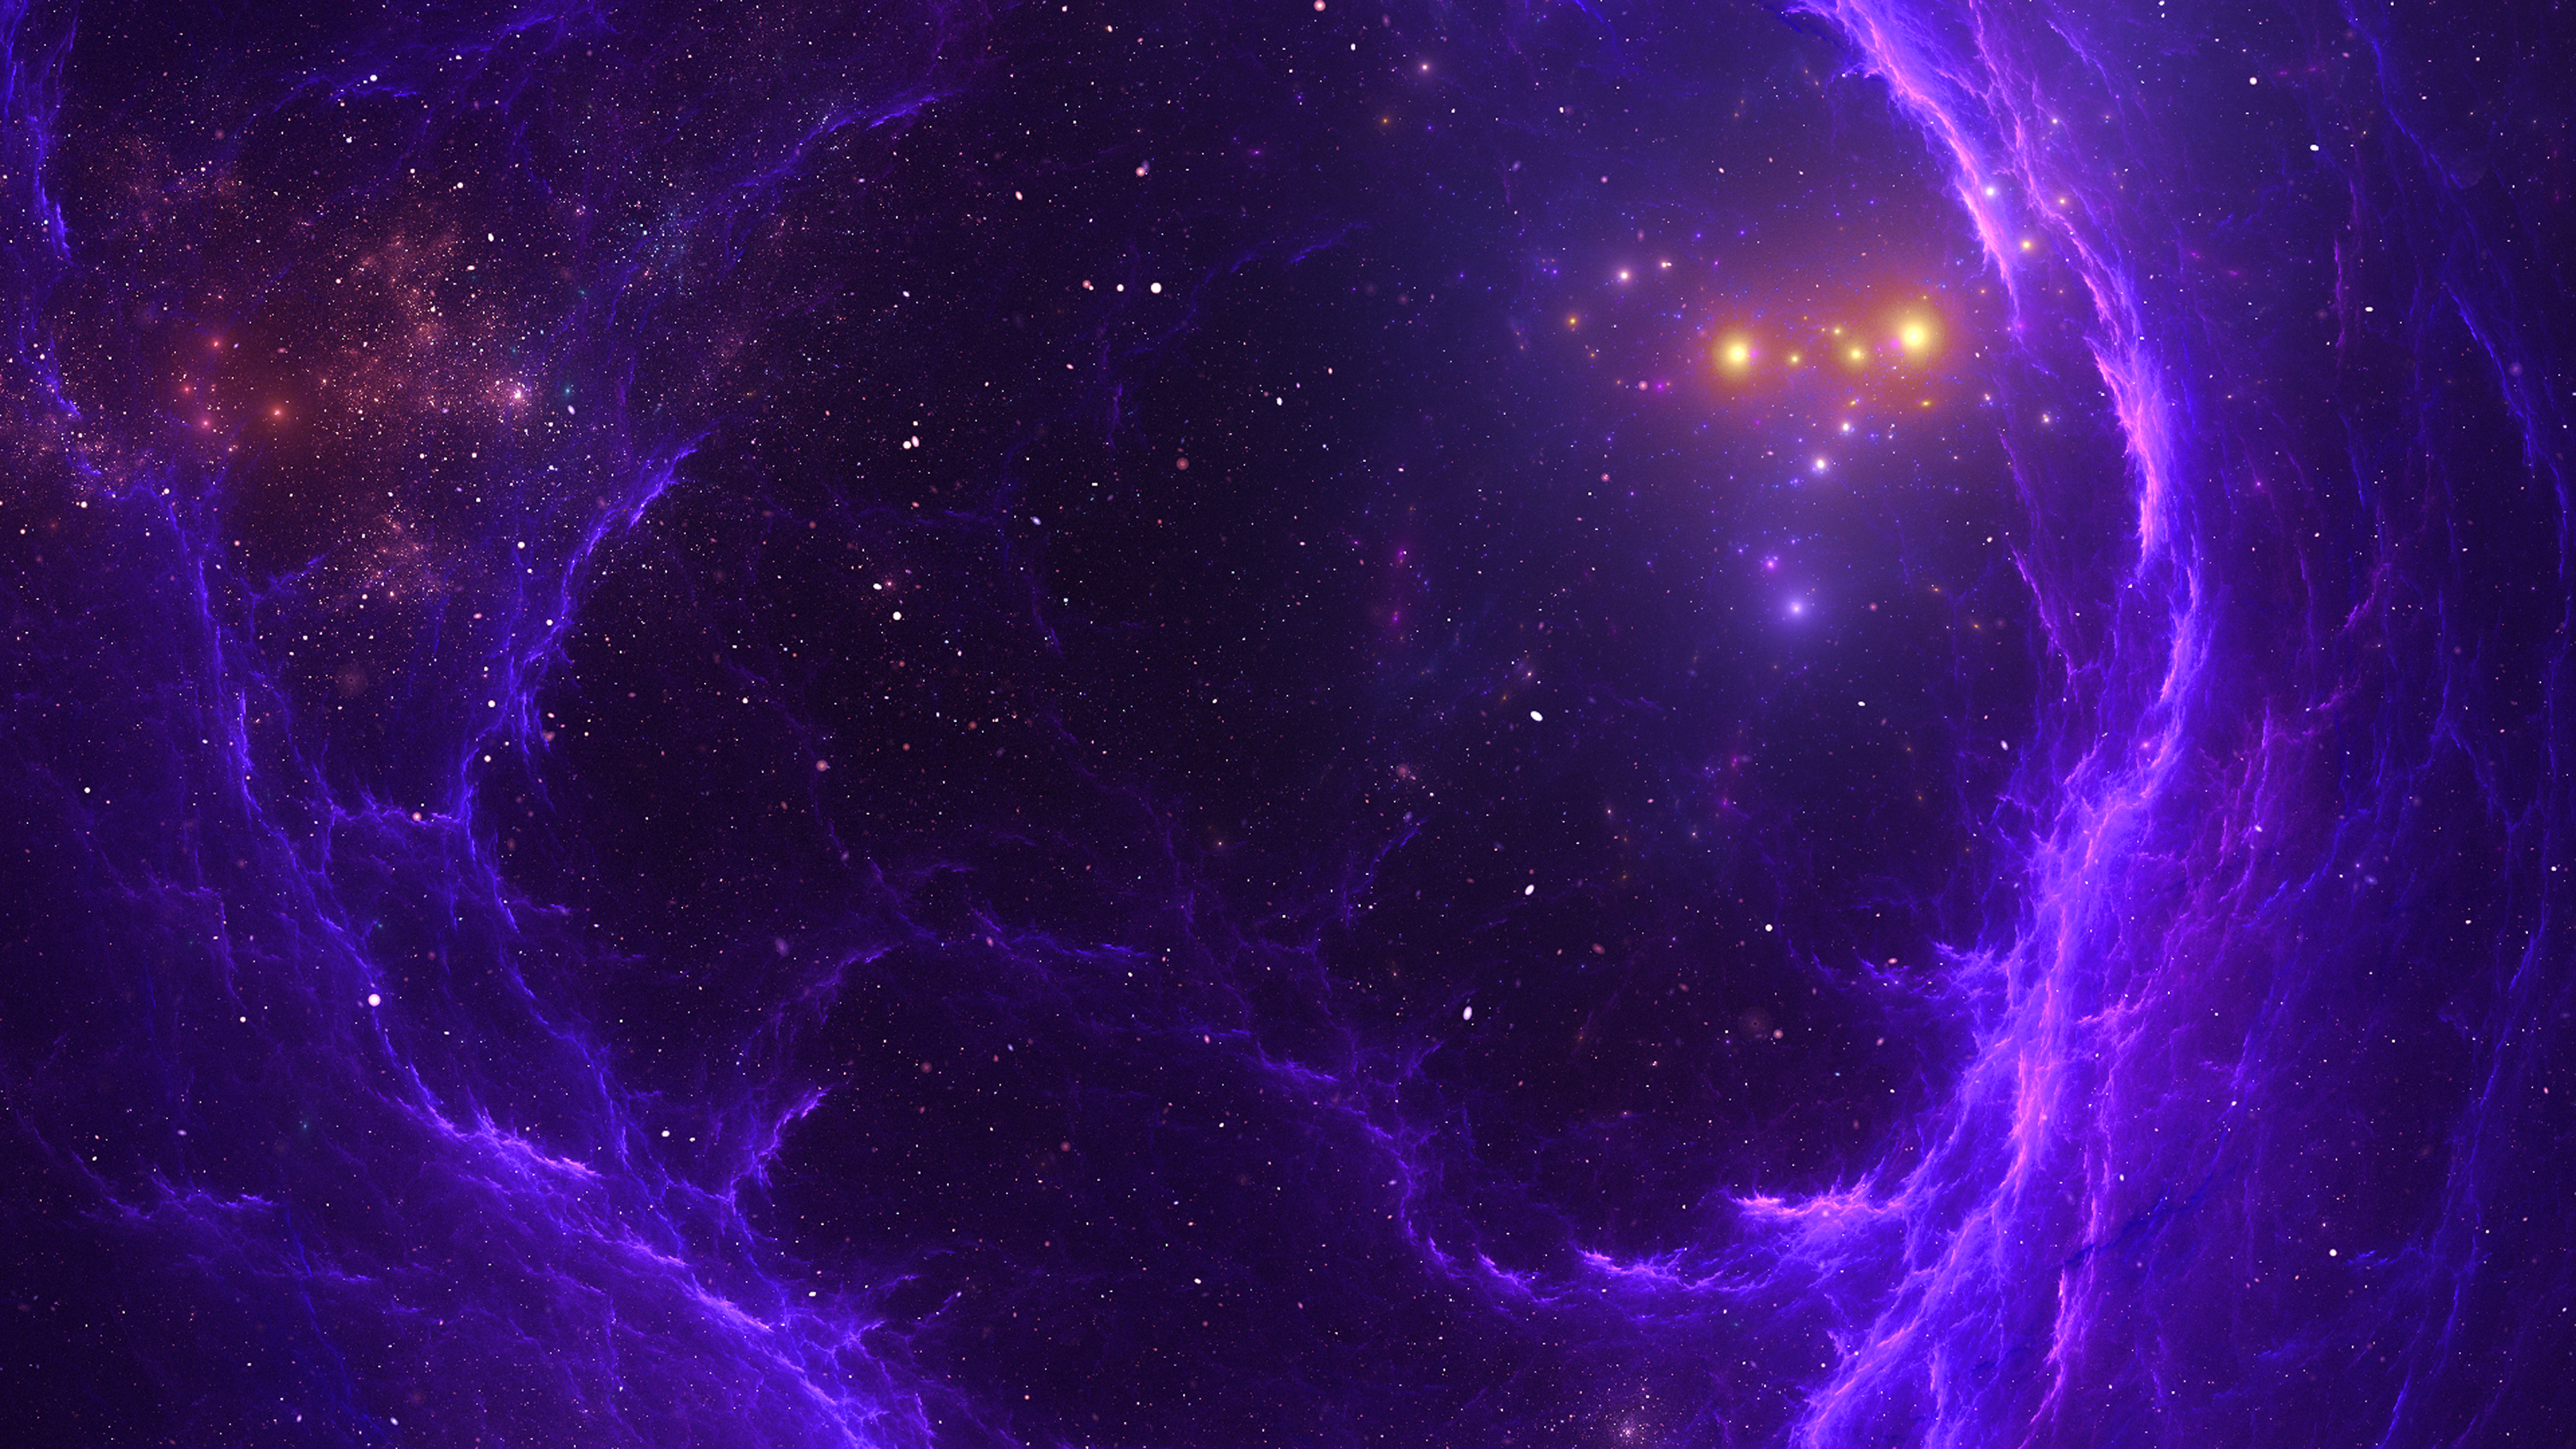 1360x768 Purple Nebula Haze Stars 4k Laptop Hd Hd 4k Wallpapers Images Backgrounds Photos And Pictures